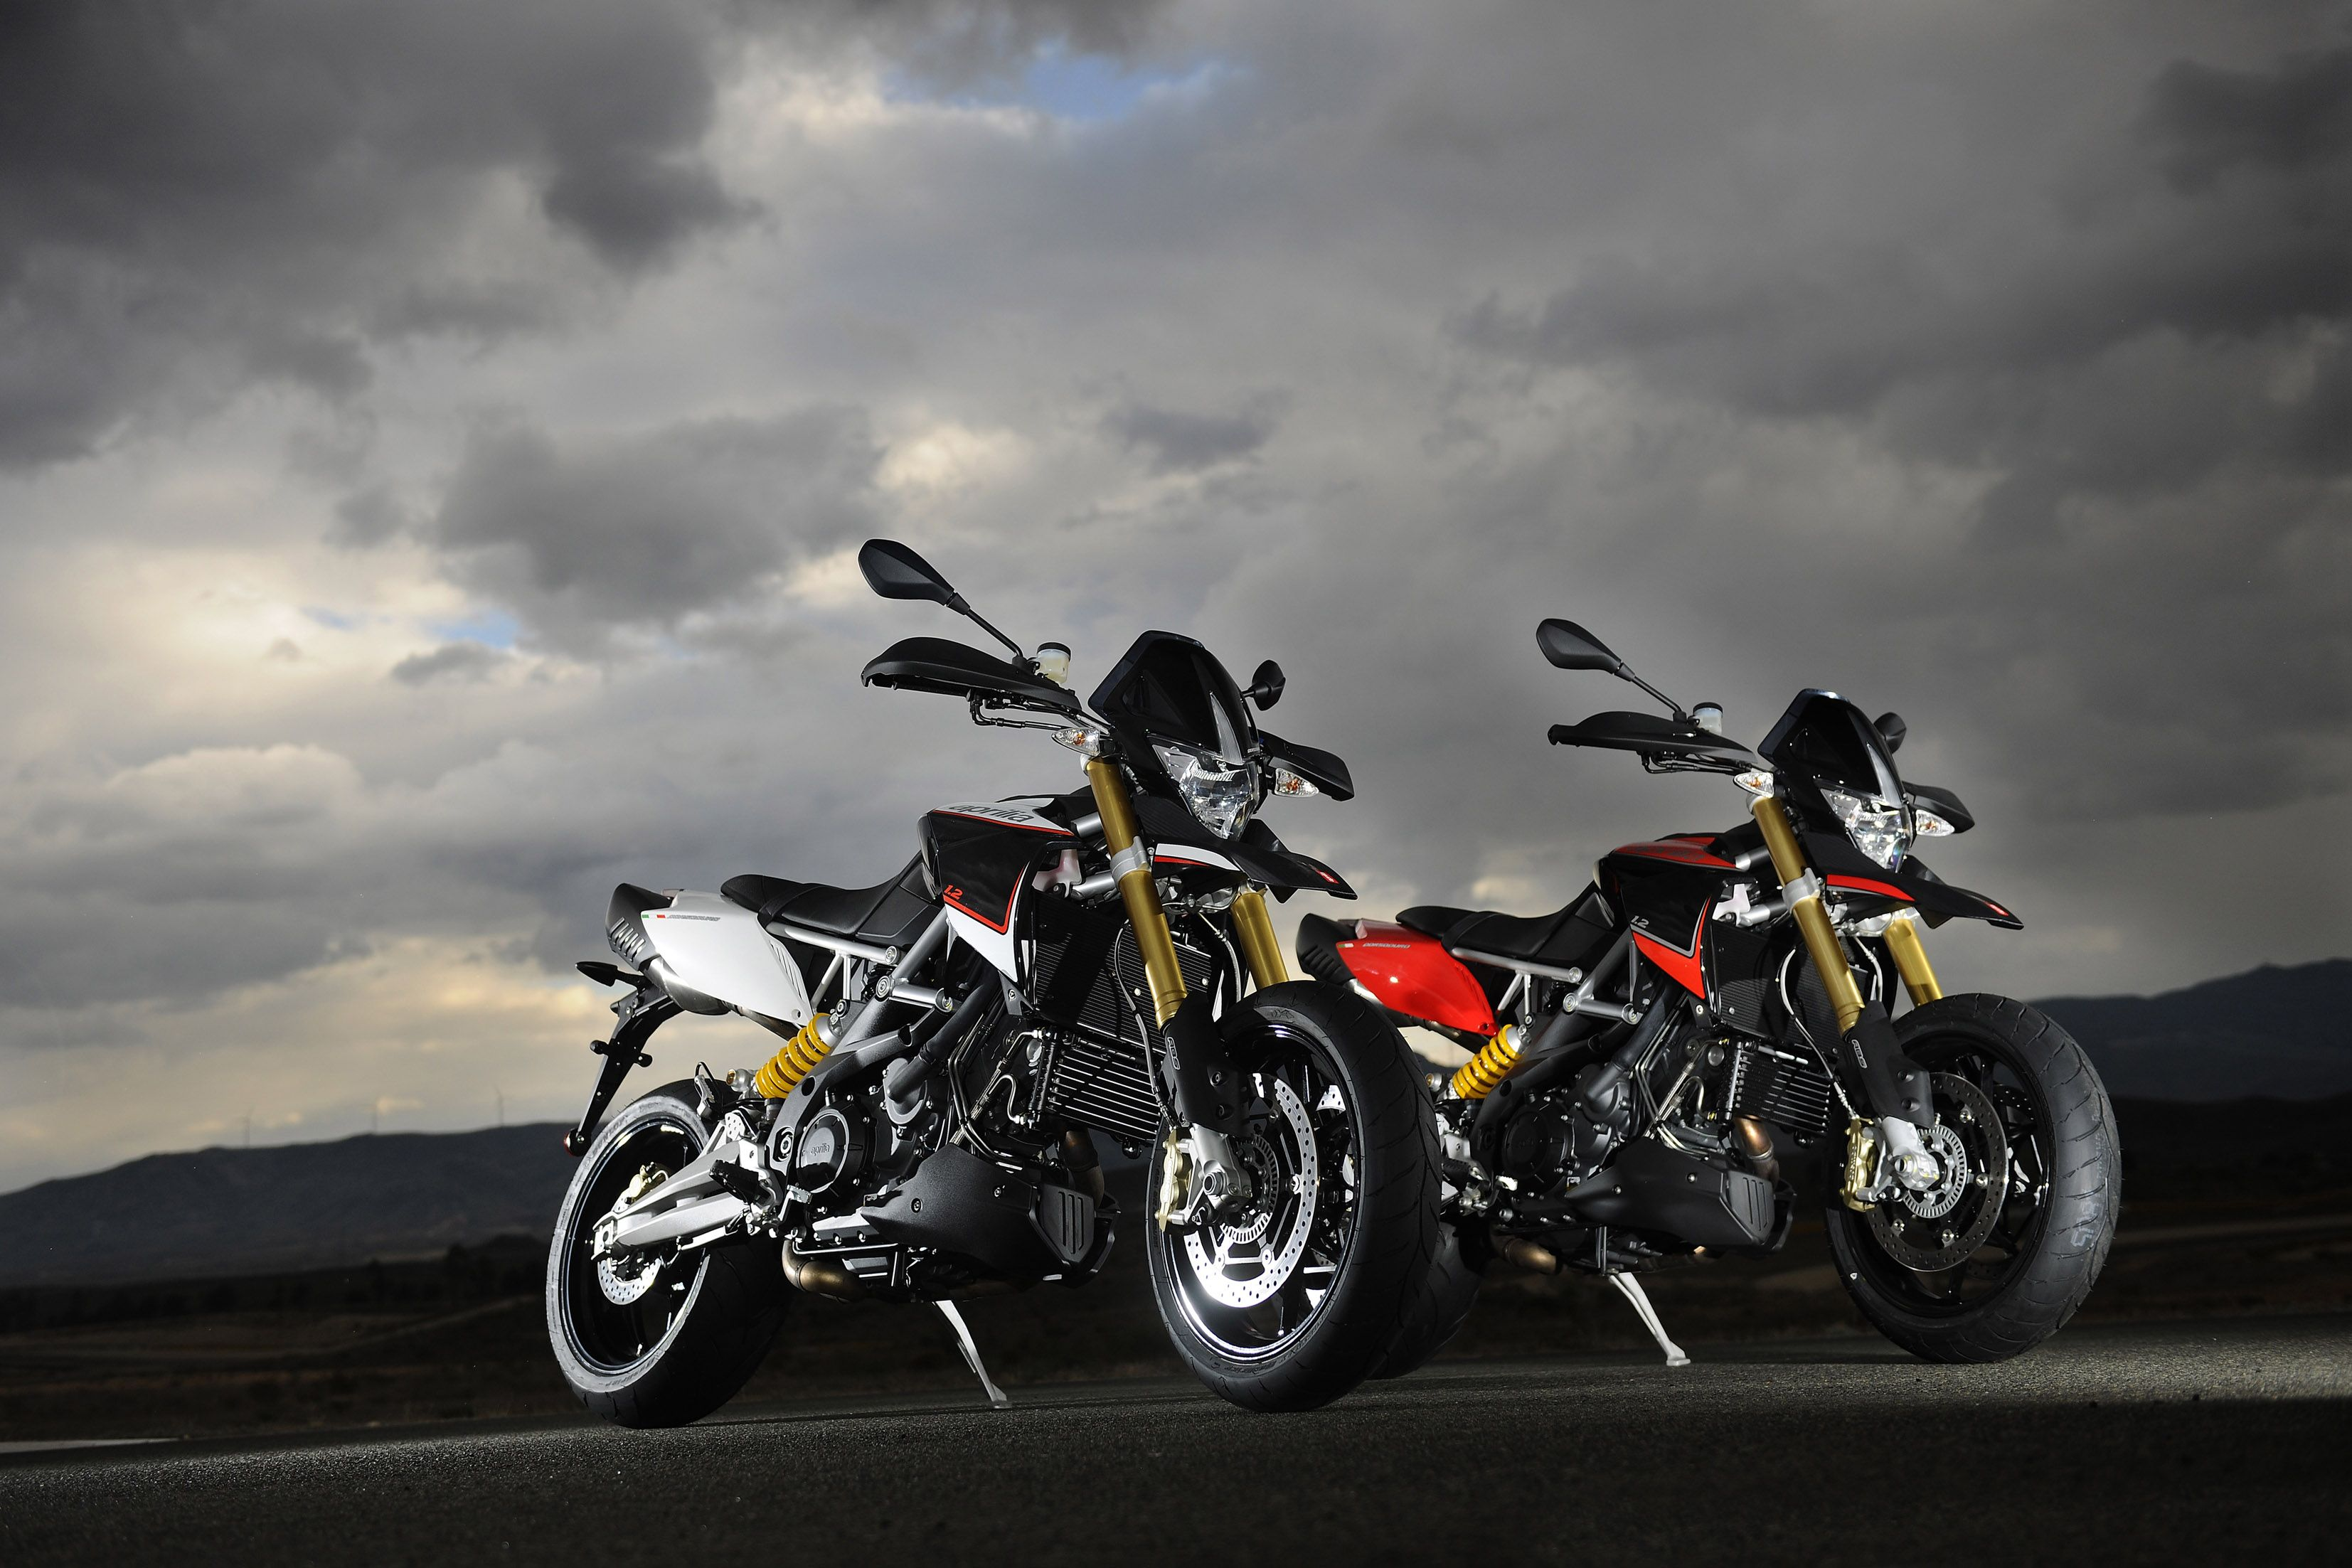 Aprilia Dorsoduro 1200 Is The New Benchmark In The Maxi Motard Class A Record Two Cylinder With 130 Hp Placed In An Incredibly Aprilia Dorsoduro Motorcycle